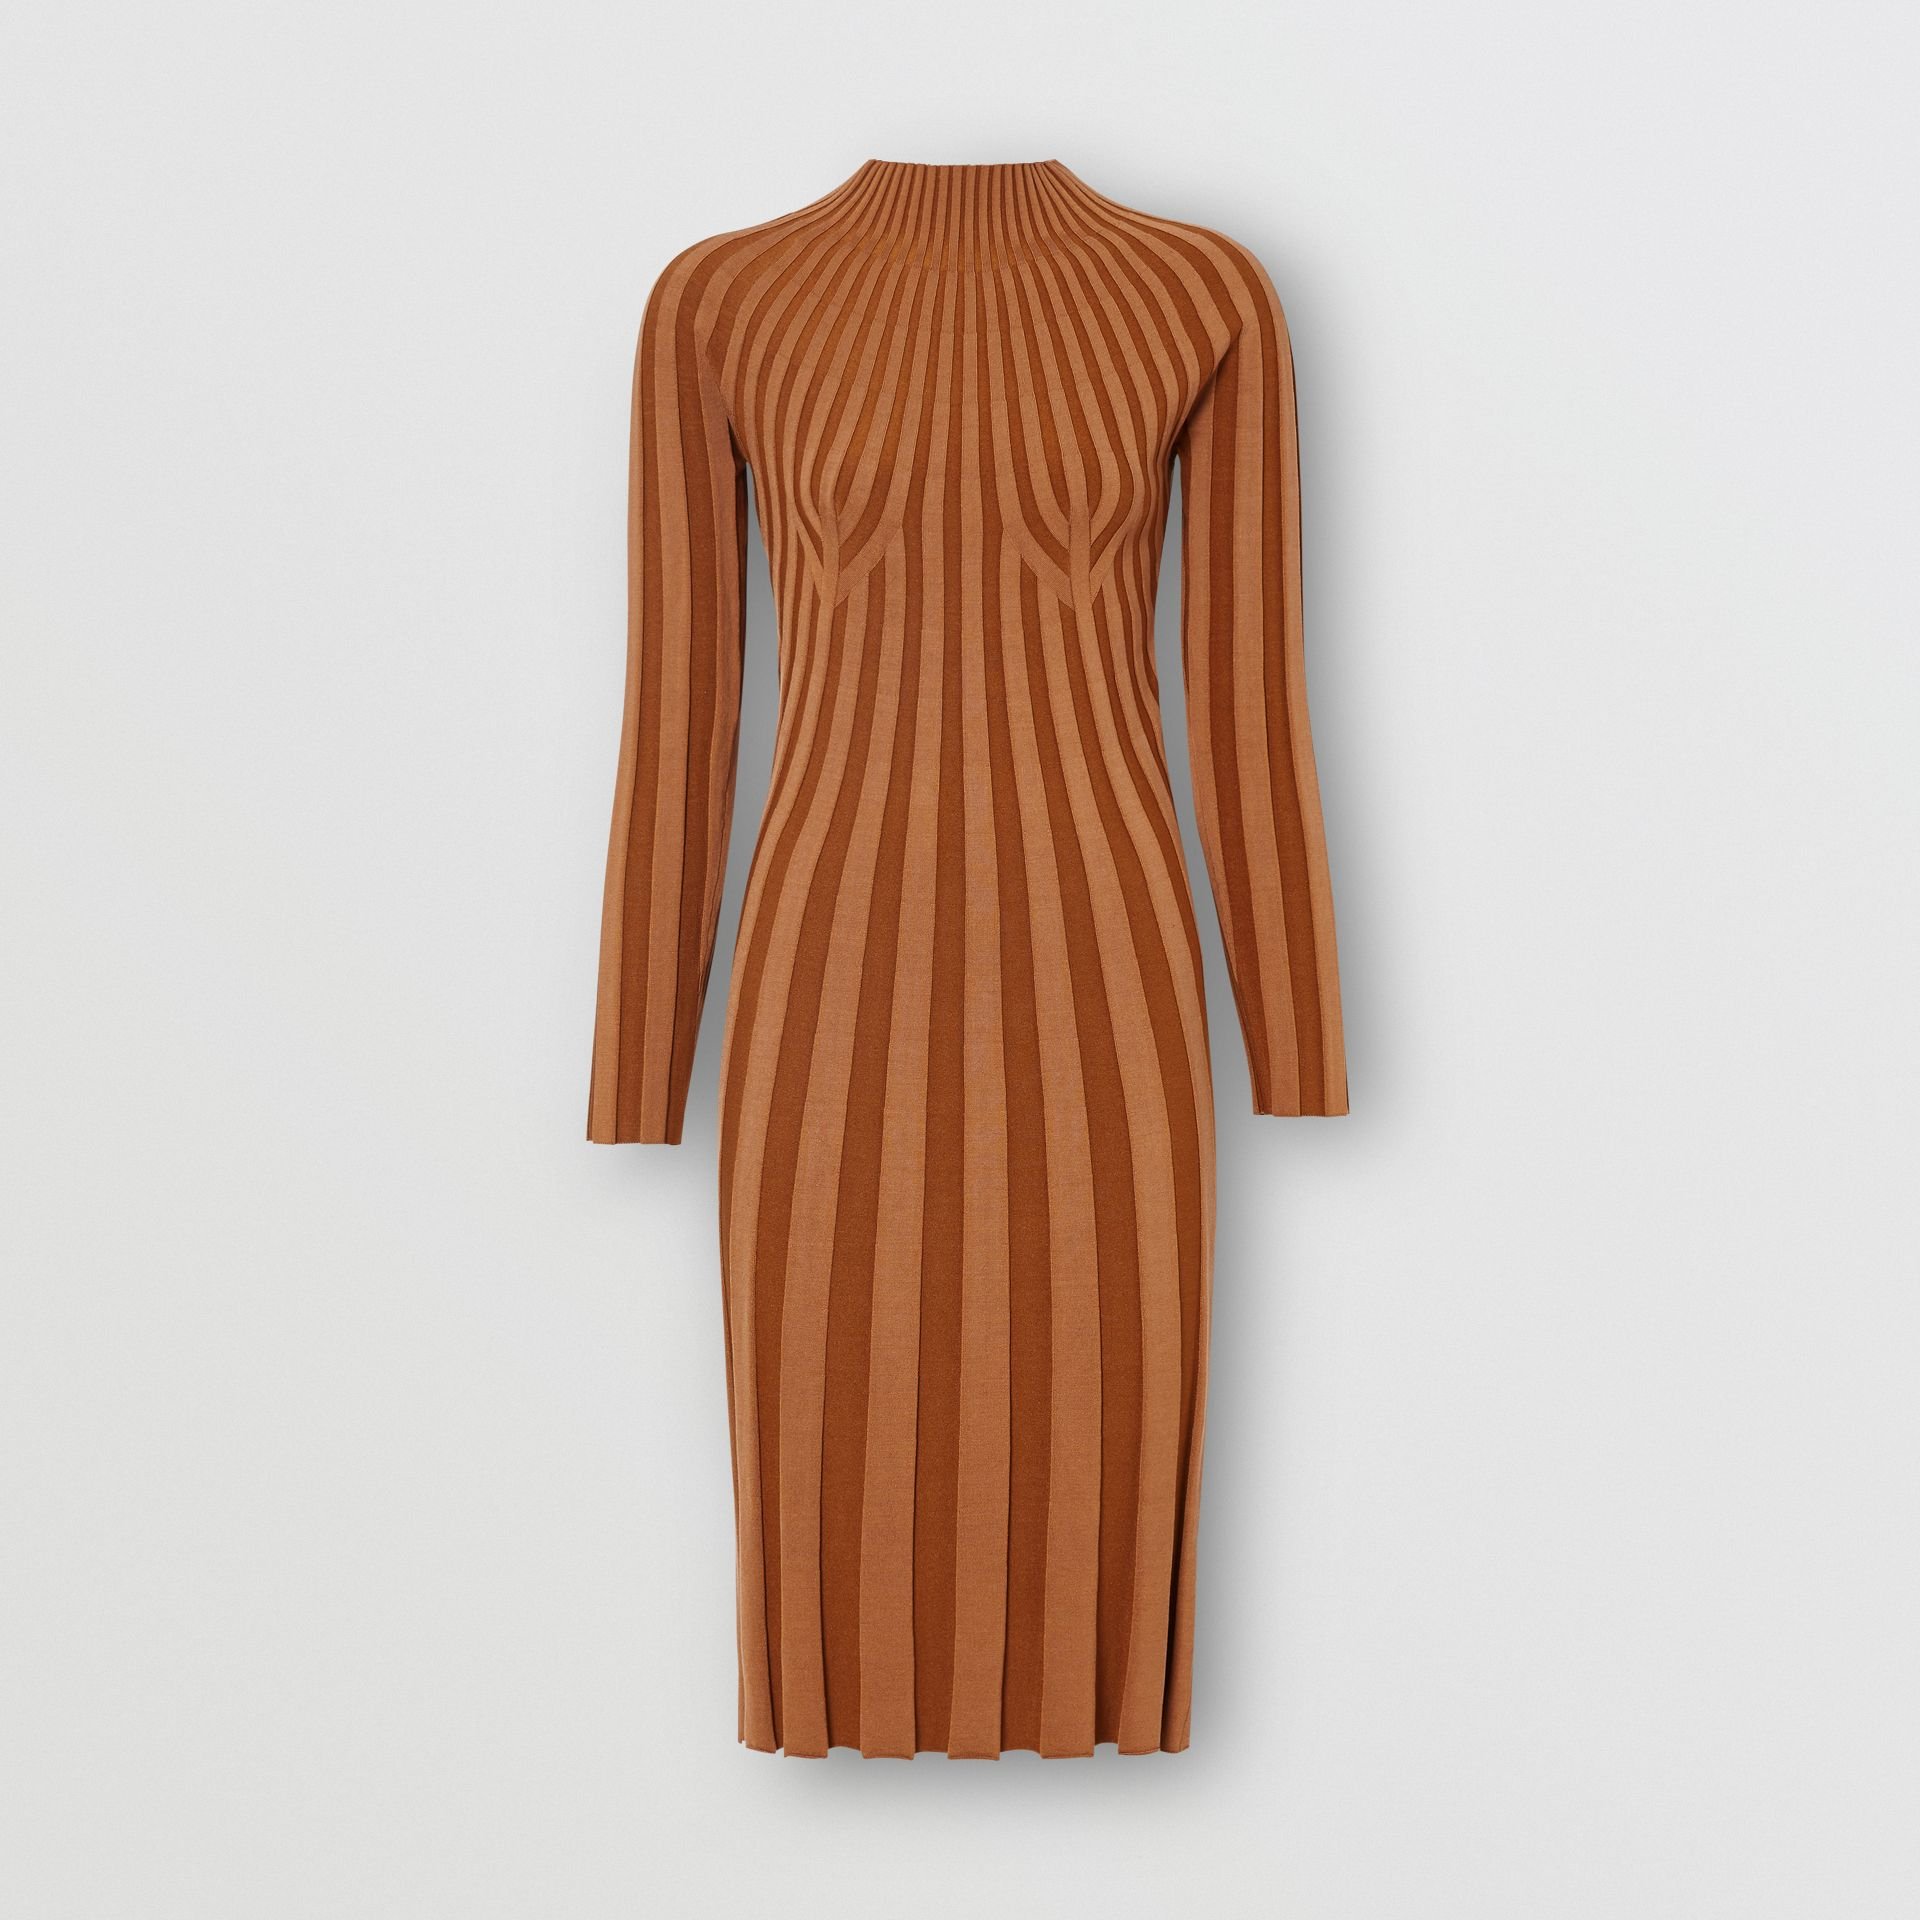 Long-sleeve Rib Knit Stretch Silk Blend Dress in Truffle - Women | Burberry - gallery image 3